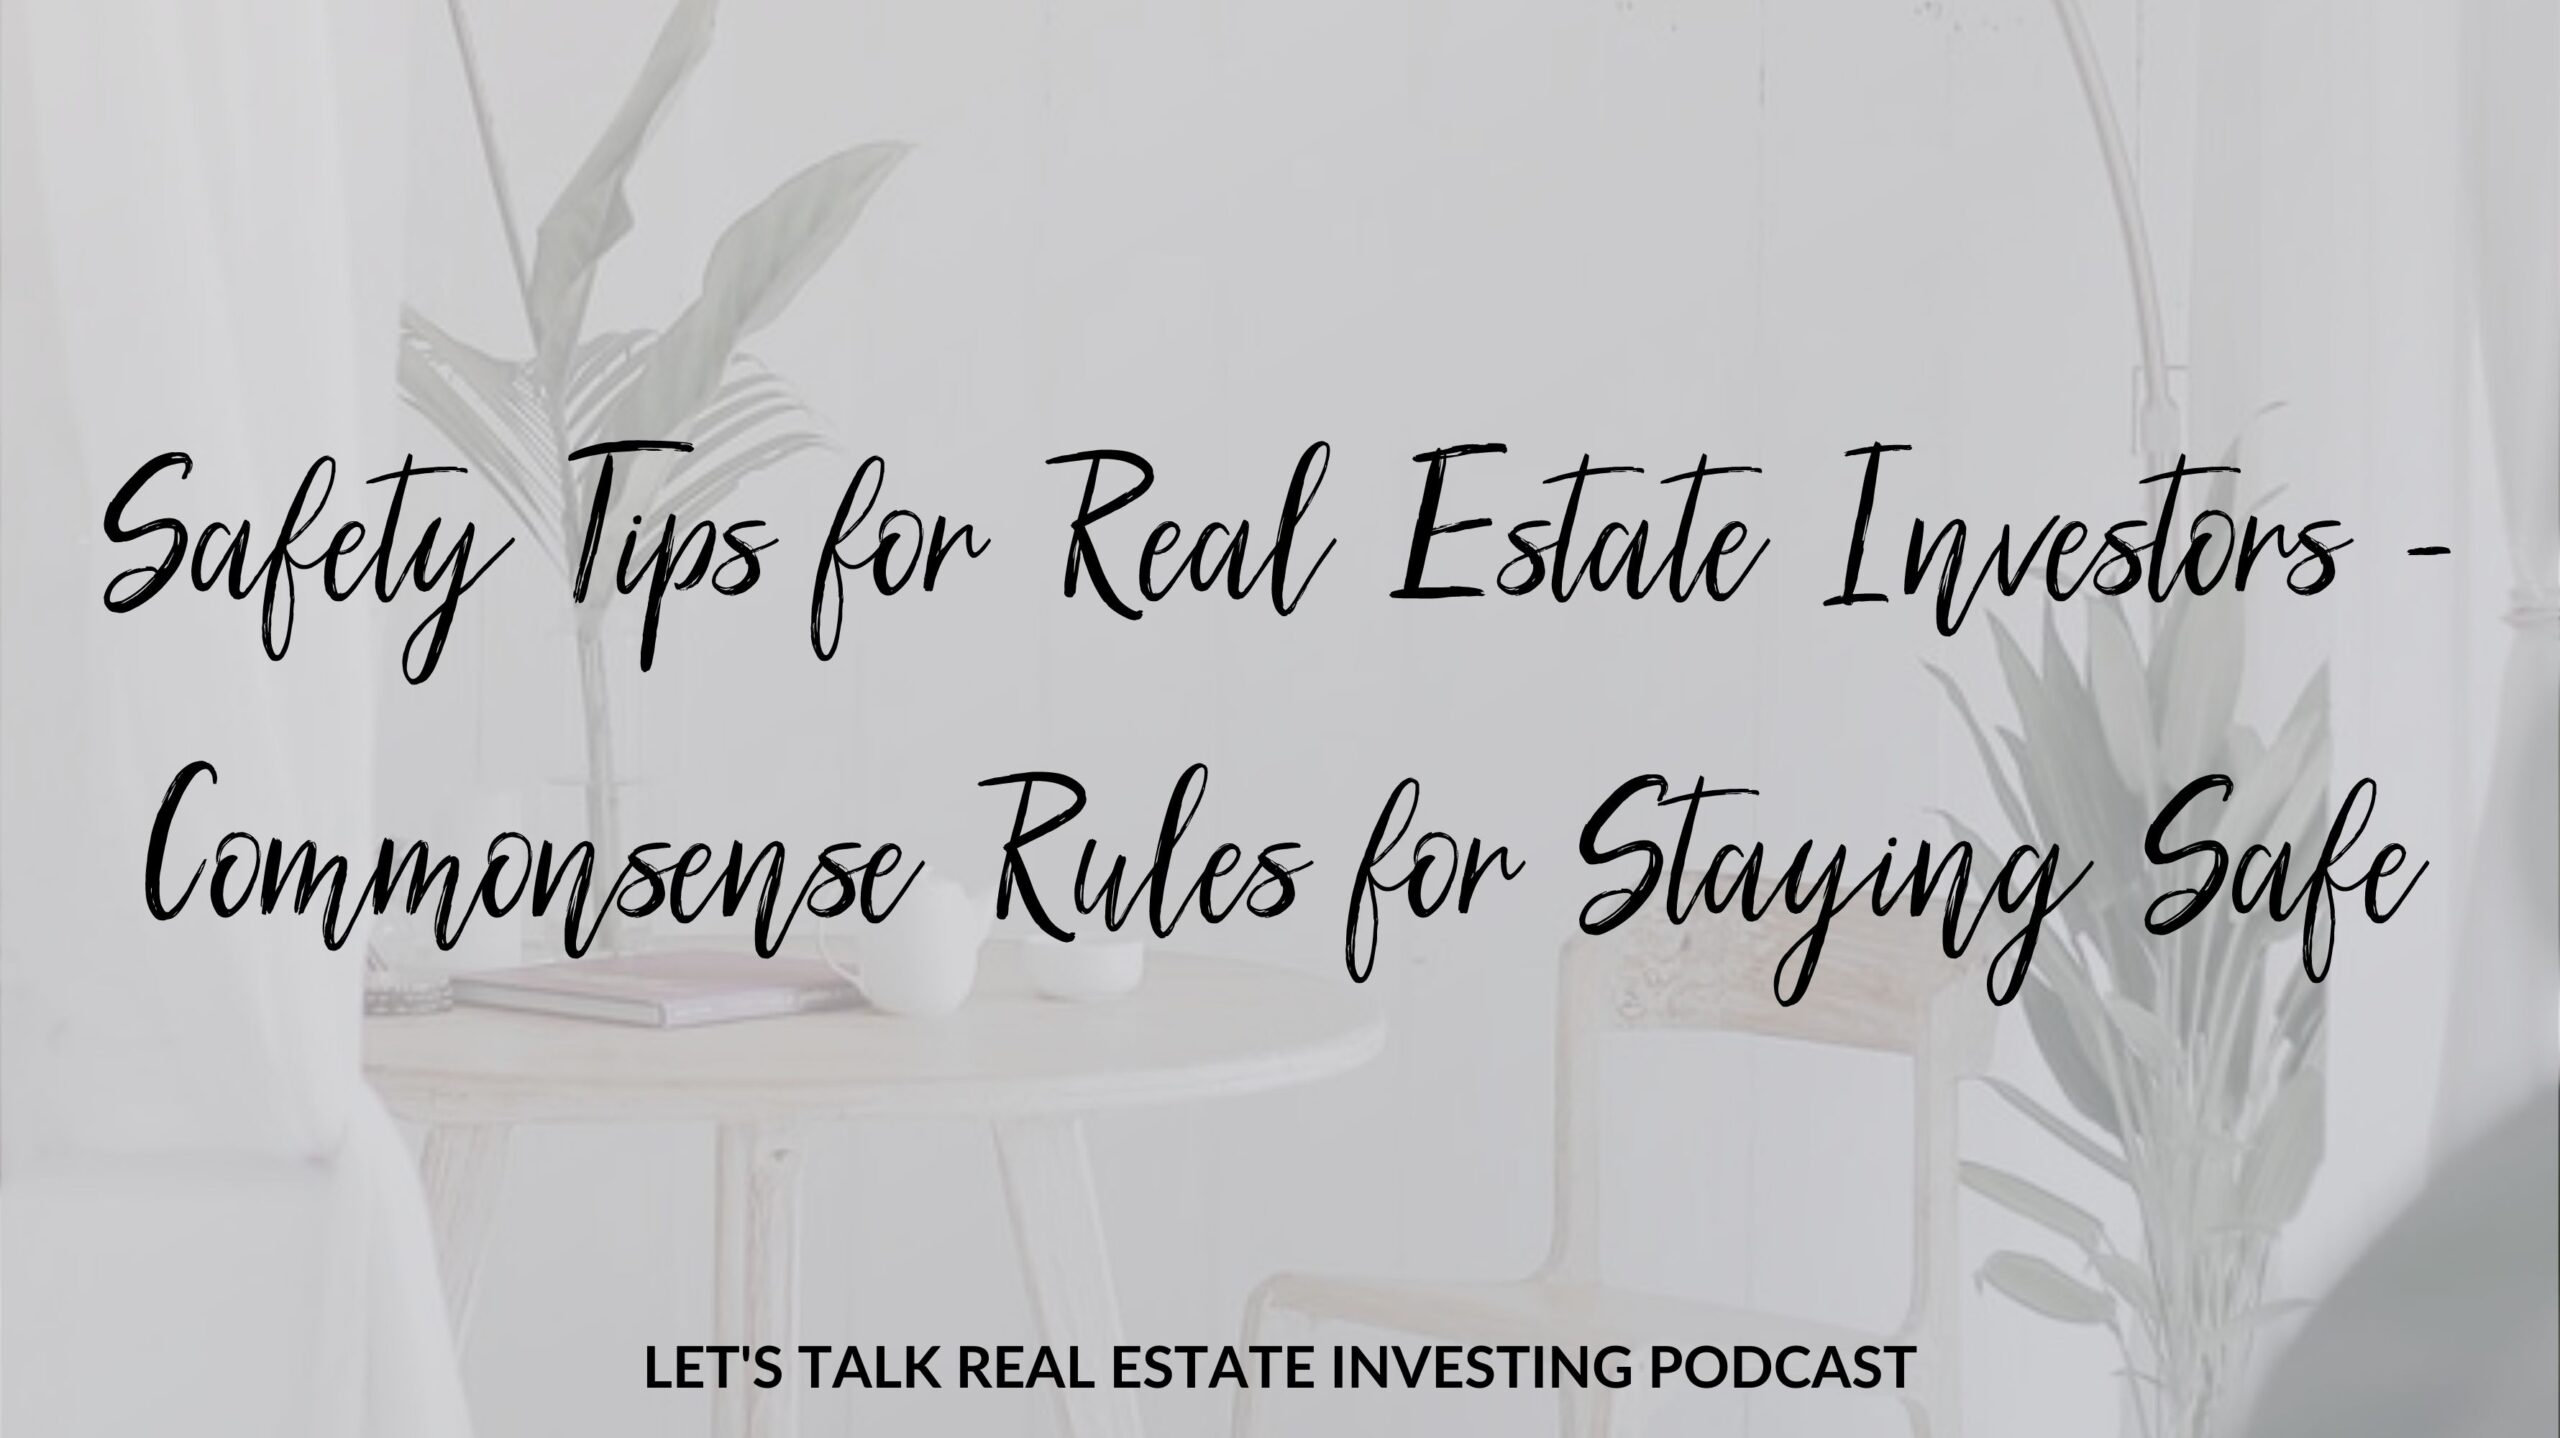 Safety Tips for Real Estate Investors - Commonsense Rules for Staying Safe